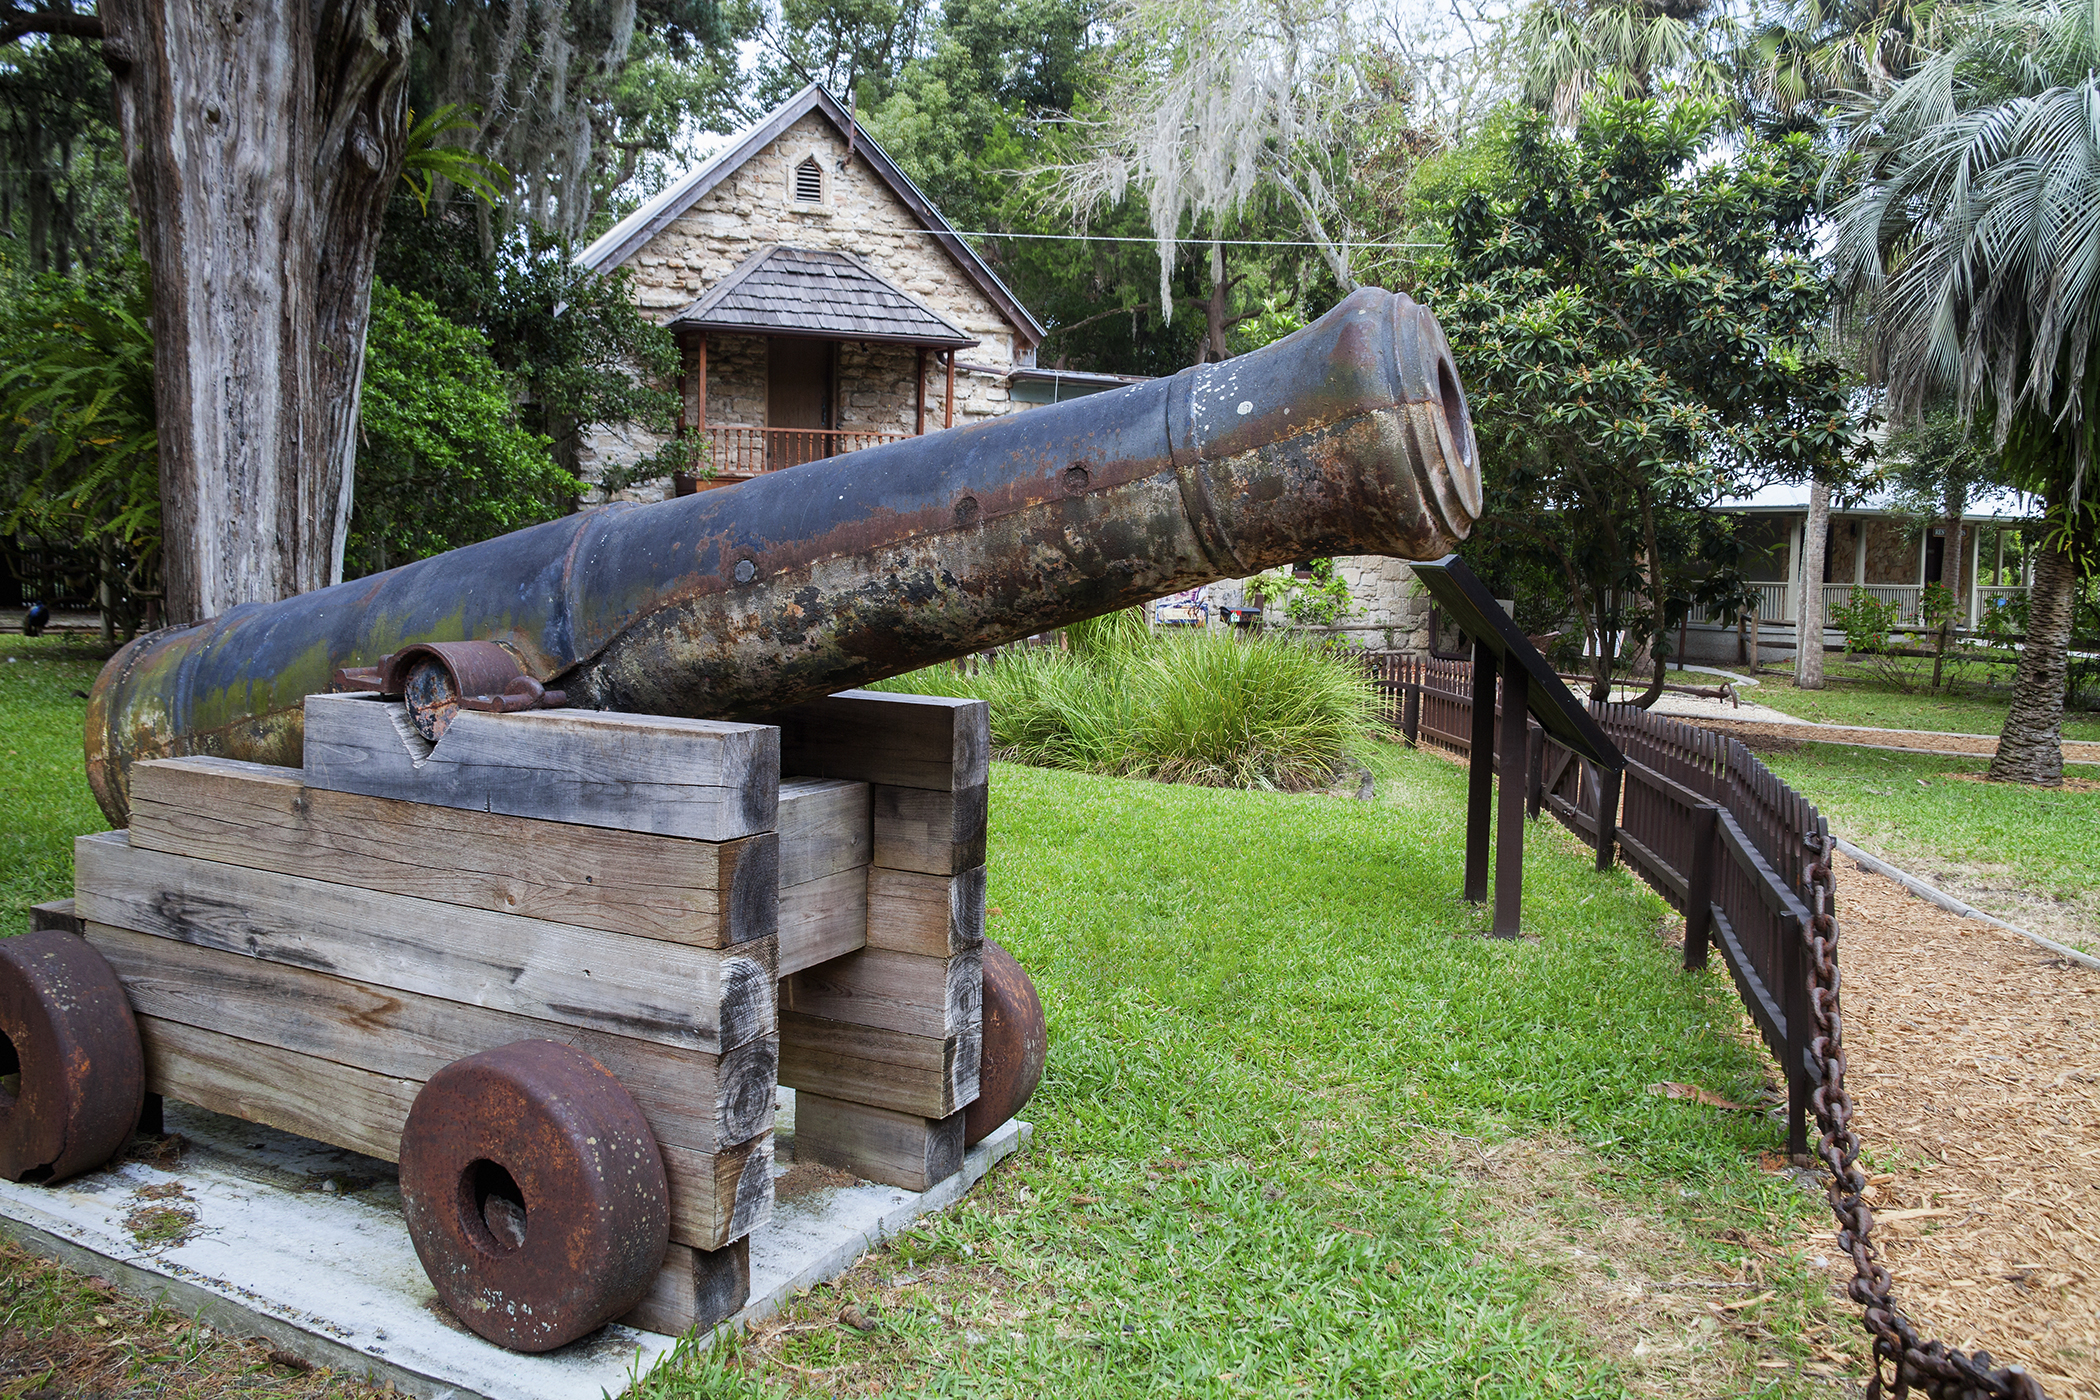 A replica of a cannon from the USS Constitution (Old Ironsides) at the Fountain of Youth. Ponce de Leon's Fountain of Youth Archaeological Park, St. Augustine Florida is in the area first explored by Juan Ponce de Leon in 1513 and later settled by Pedro Menendez de Aviles in 1565. At the Park, you can drink from the fountain which Ponce de Leon thought was the fountain of youth. St. Augustine is the oldest European settlement in the United States.